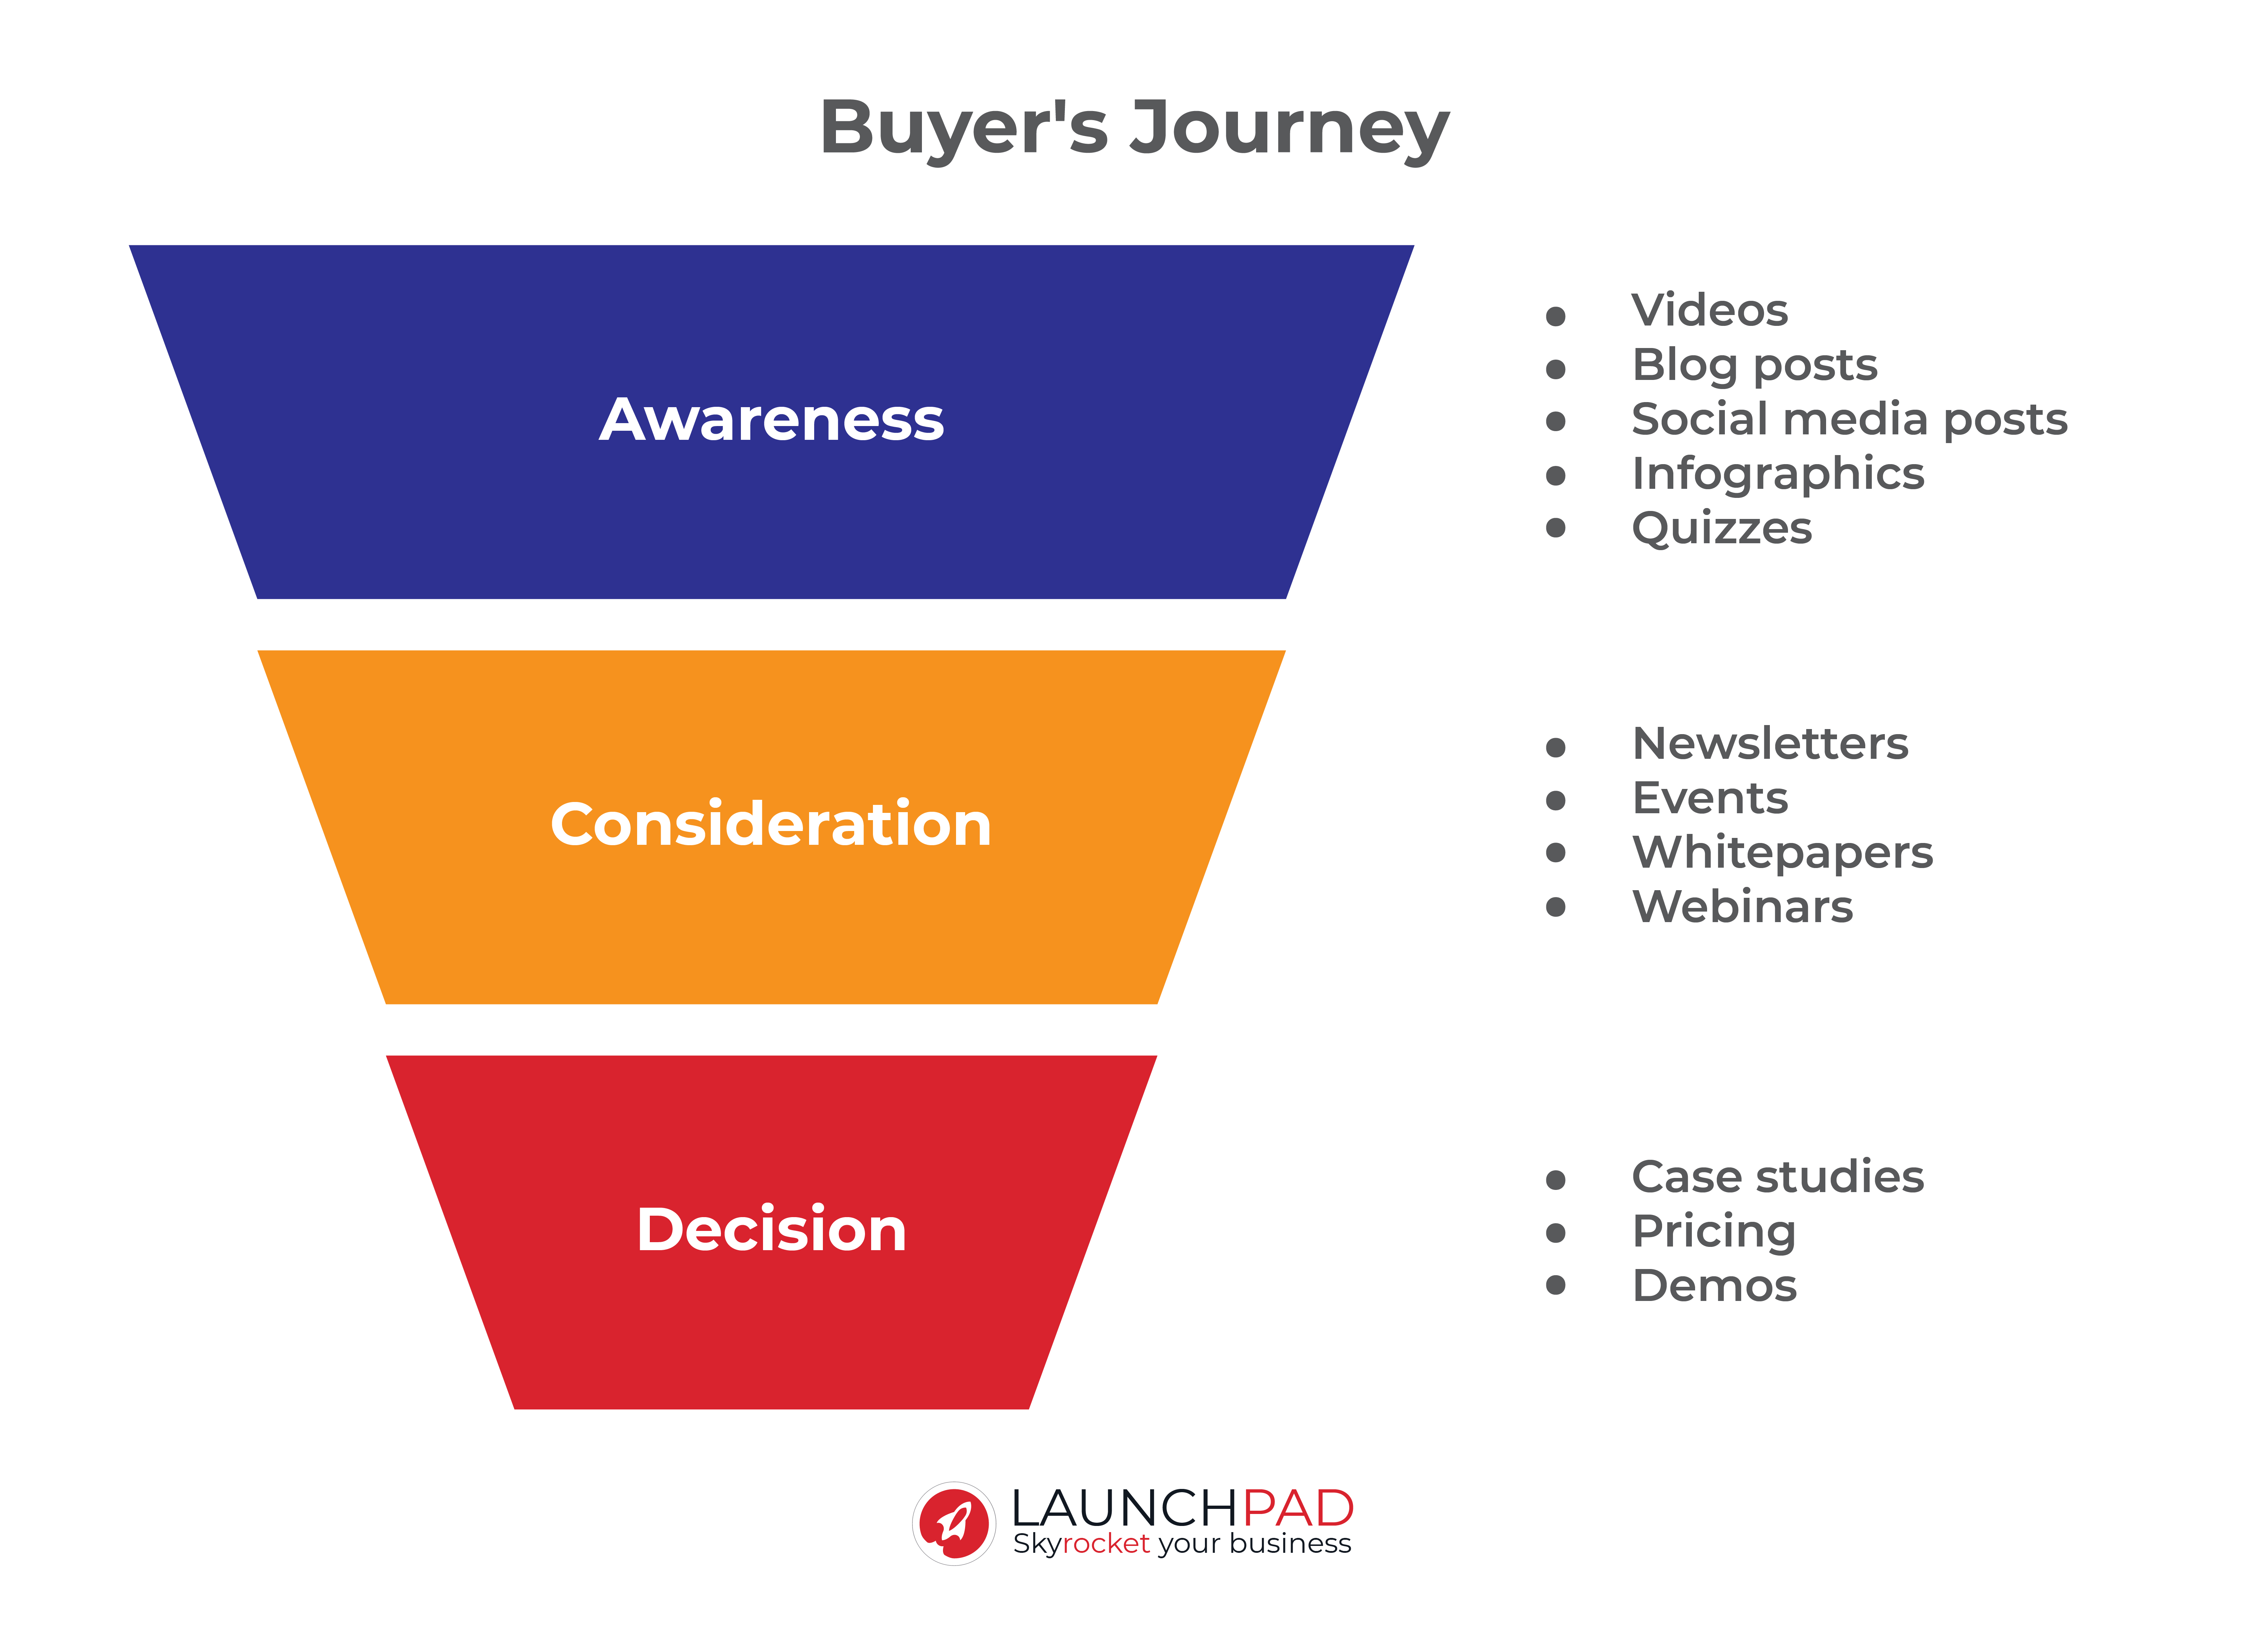 Buyer's journey